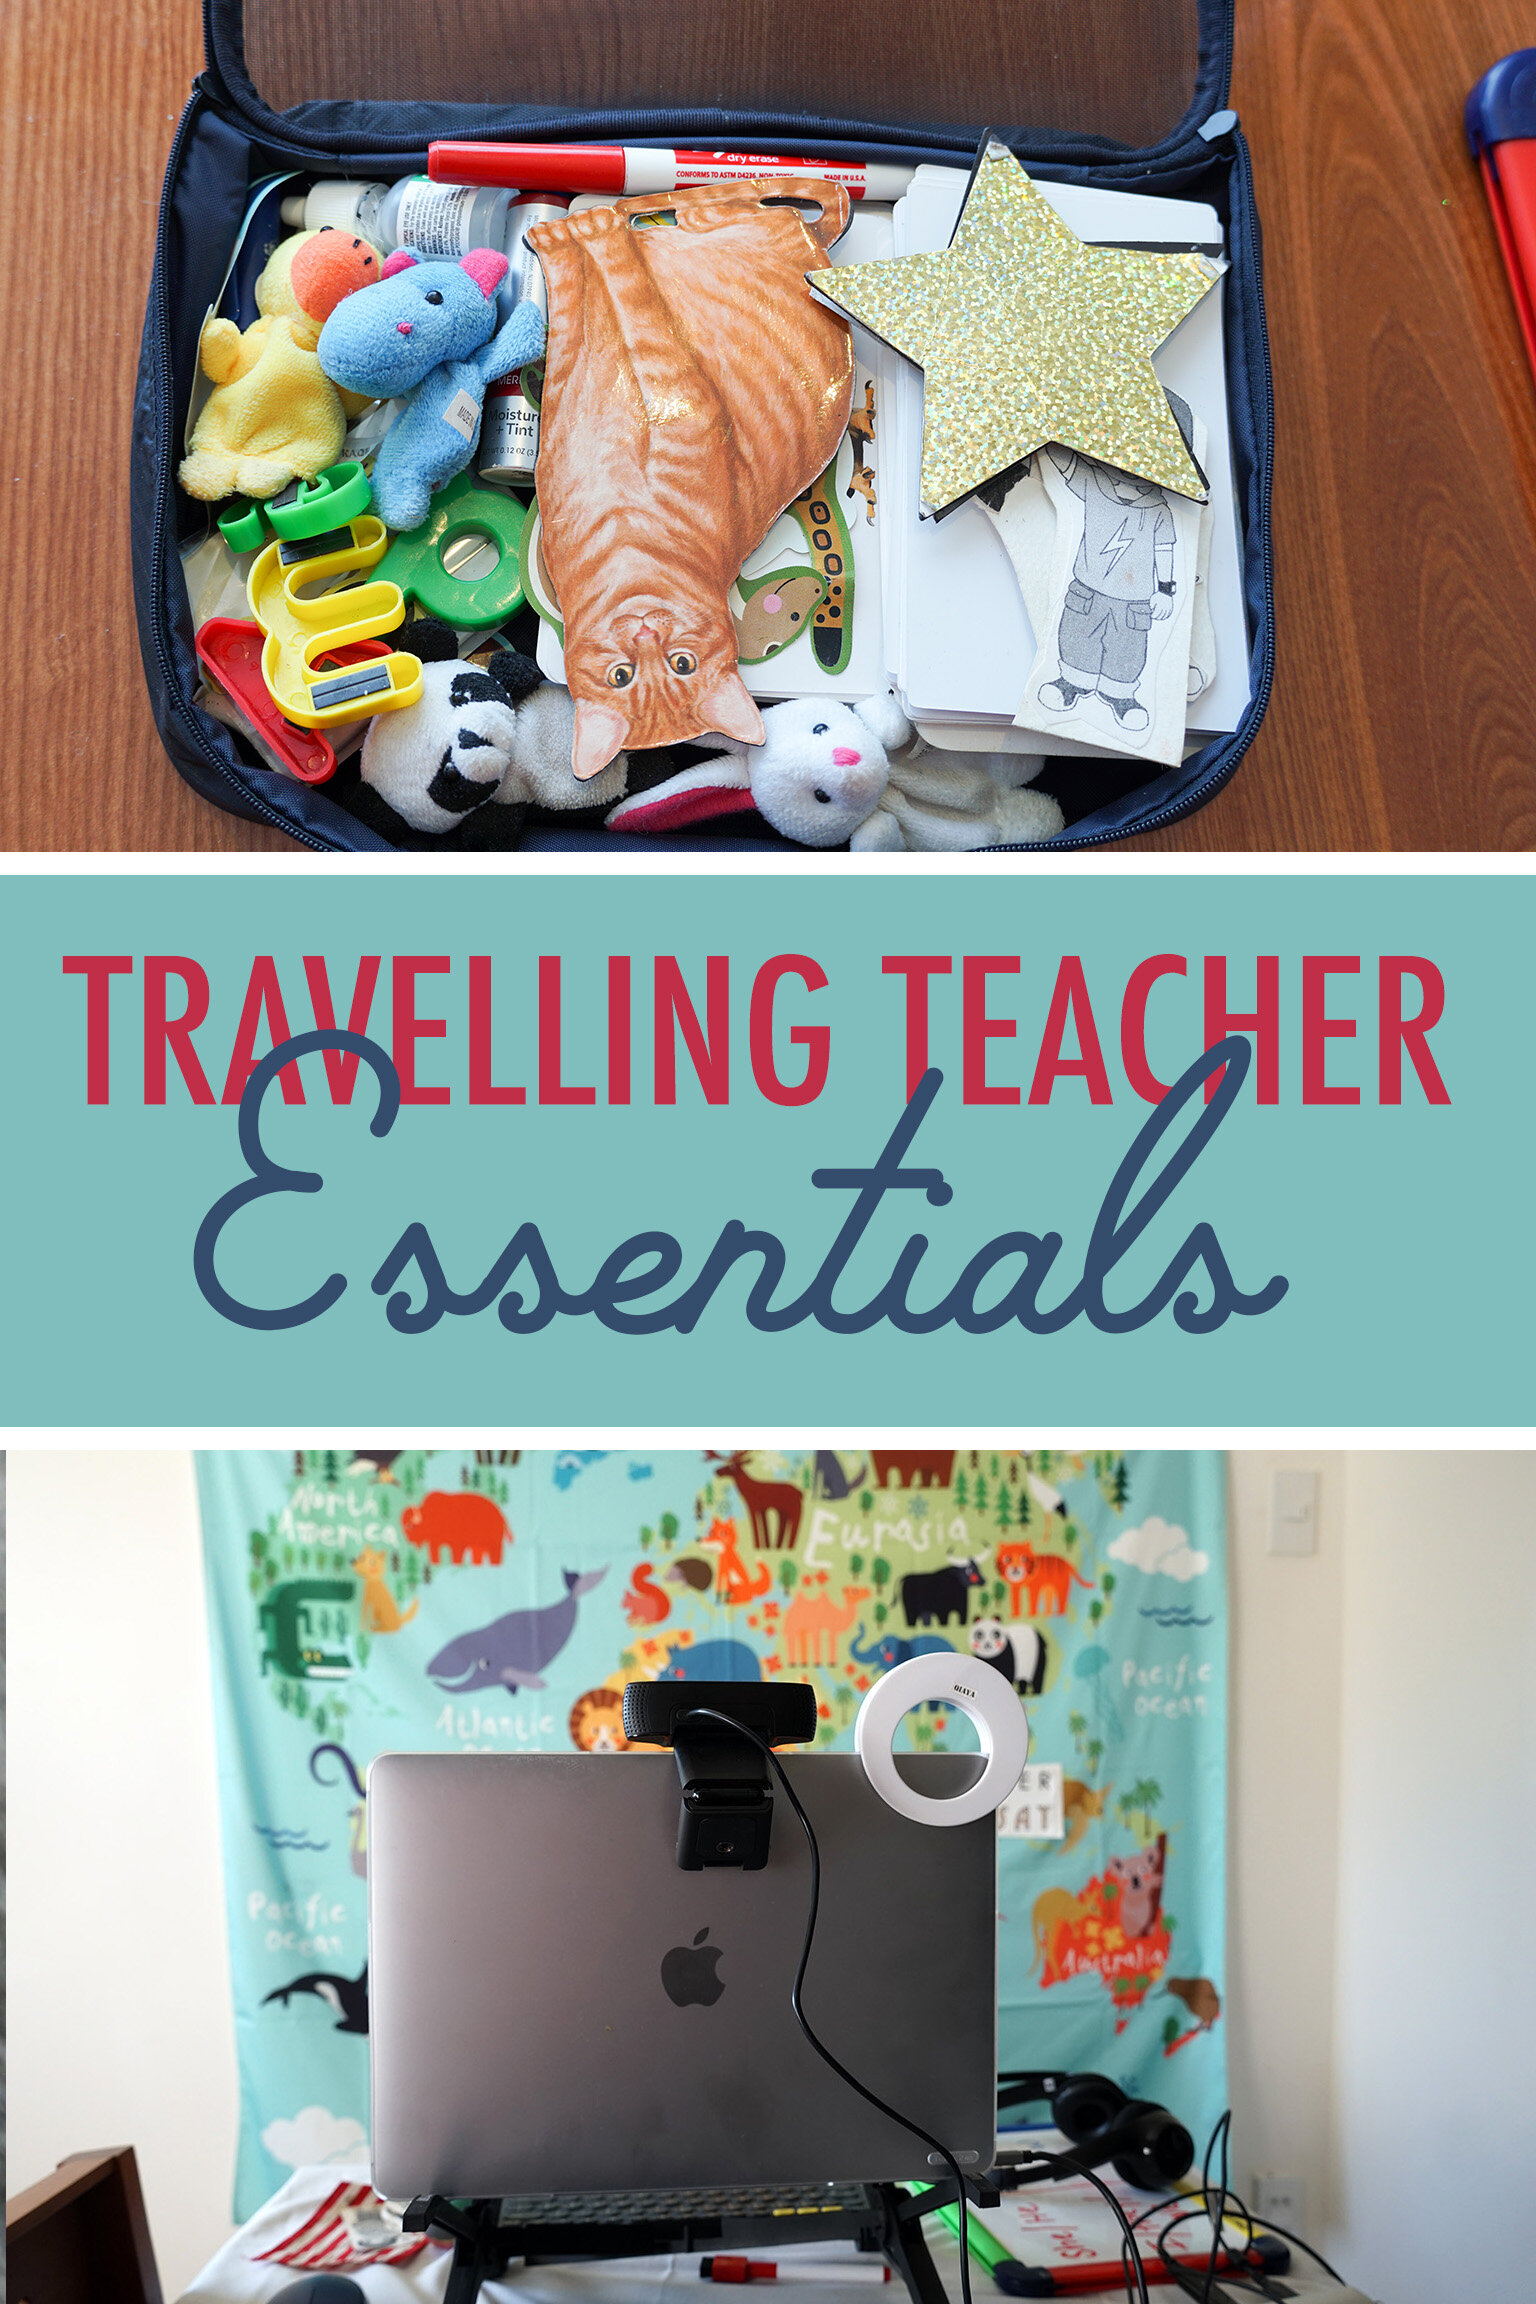 What am I missing, teachers? What won't you leave home without? -